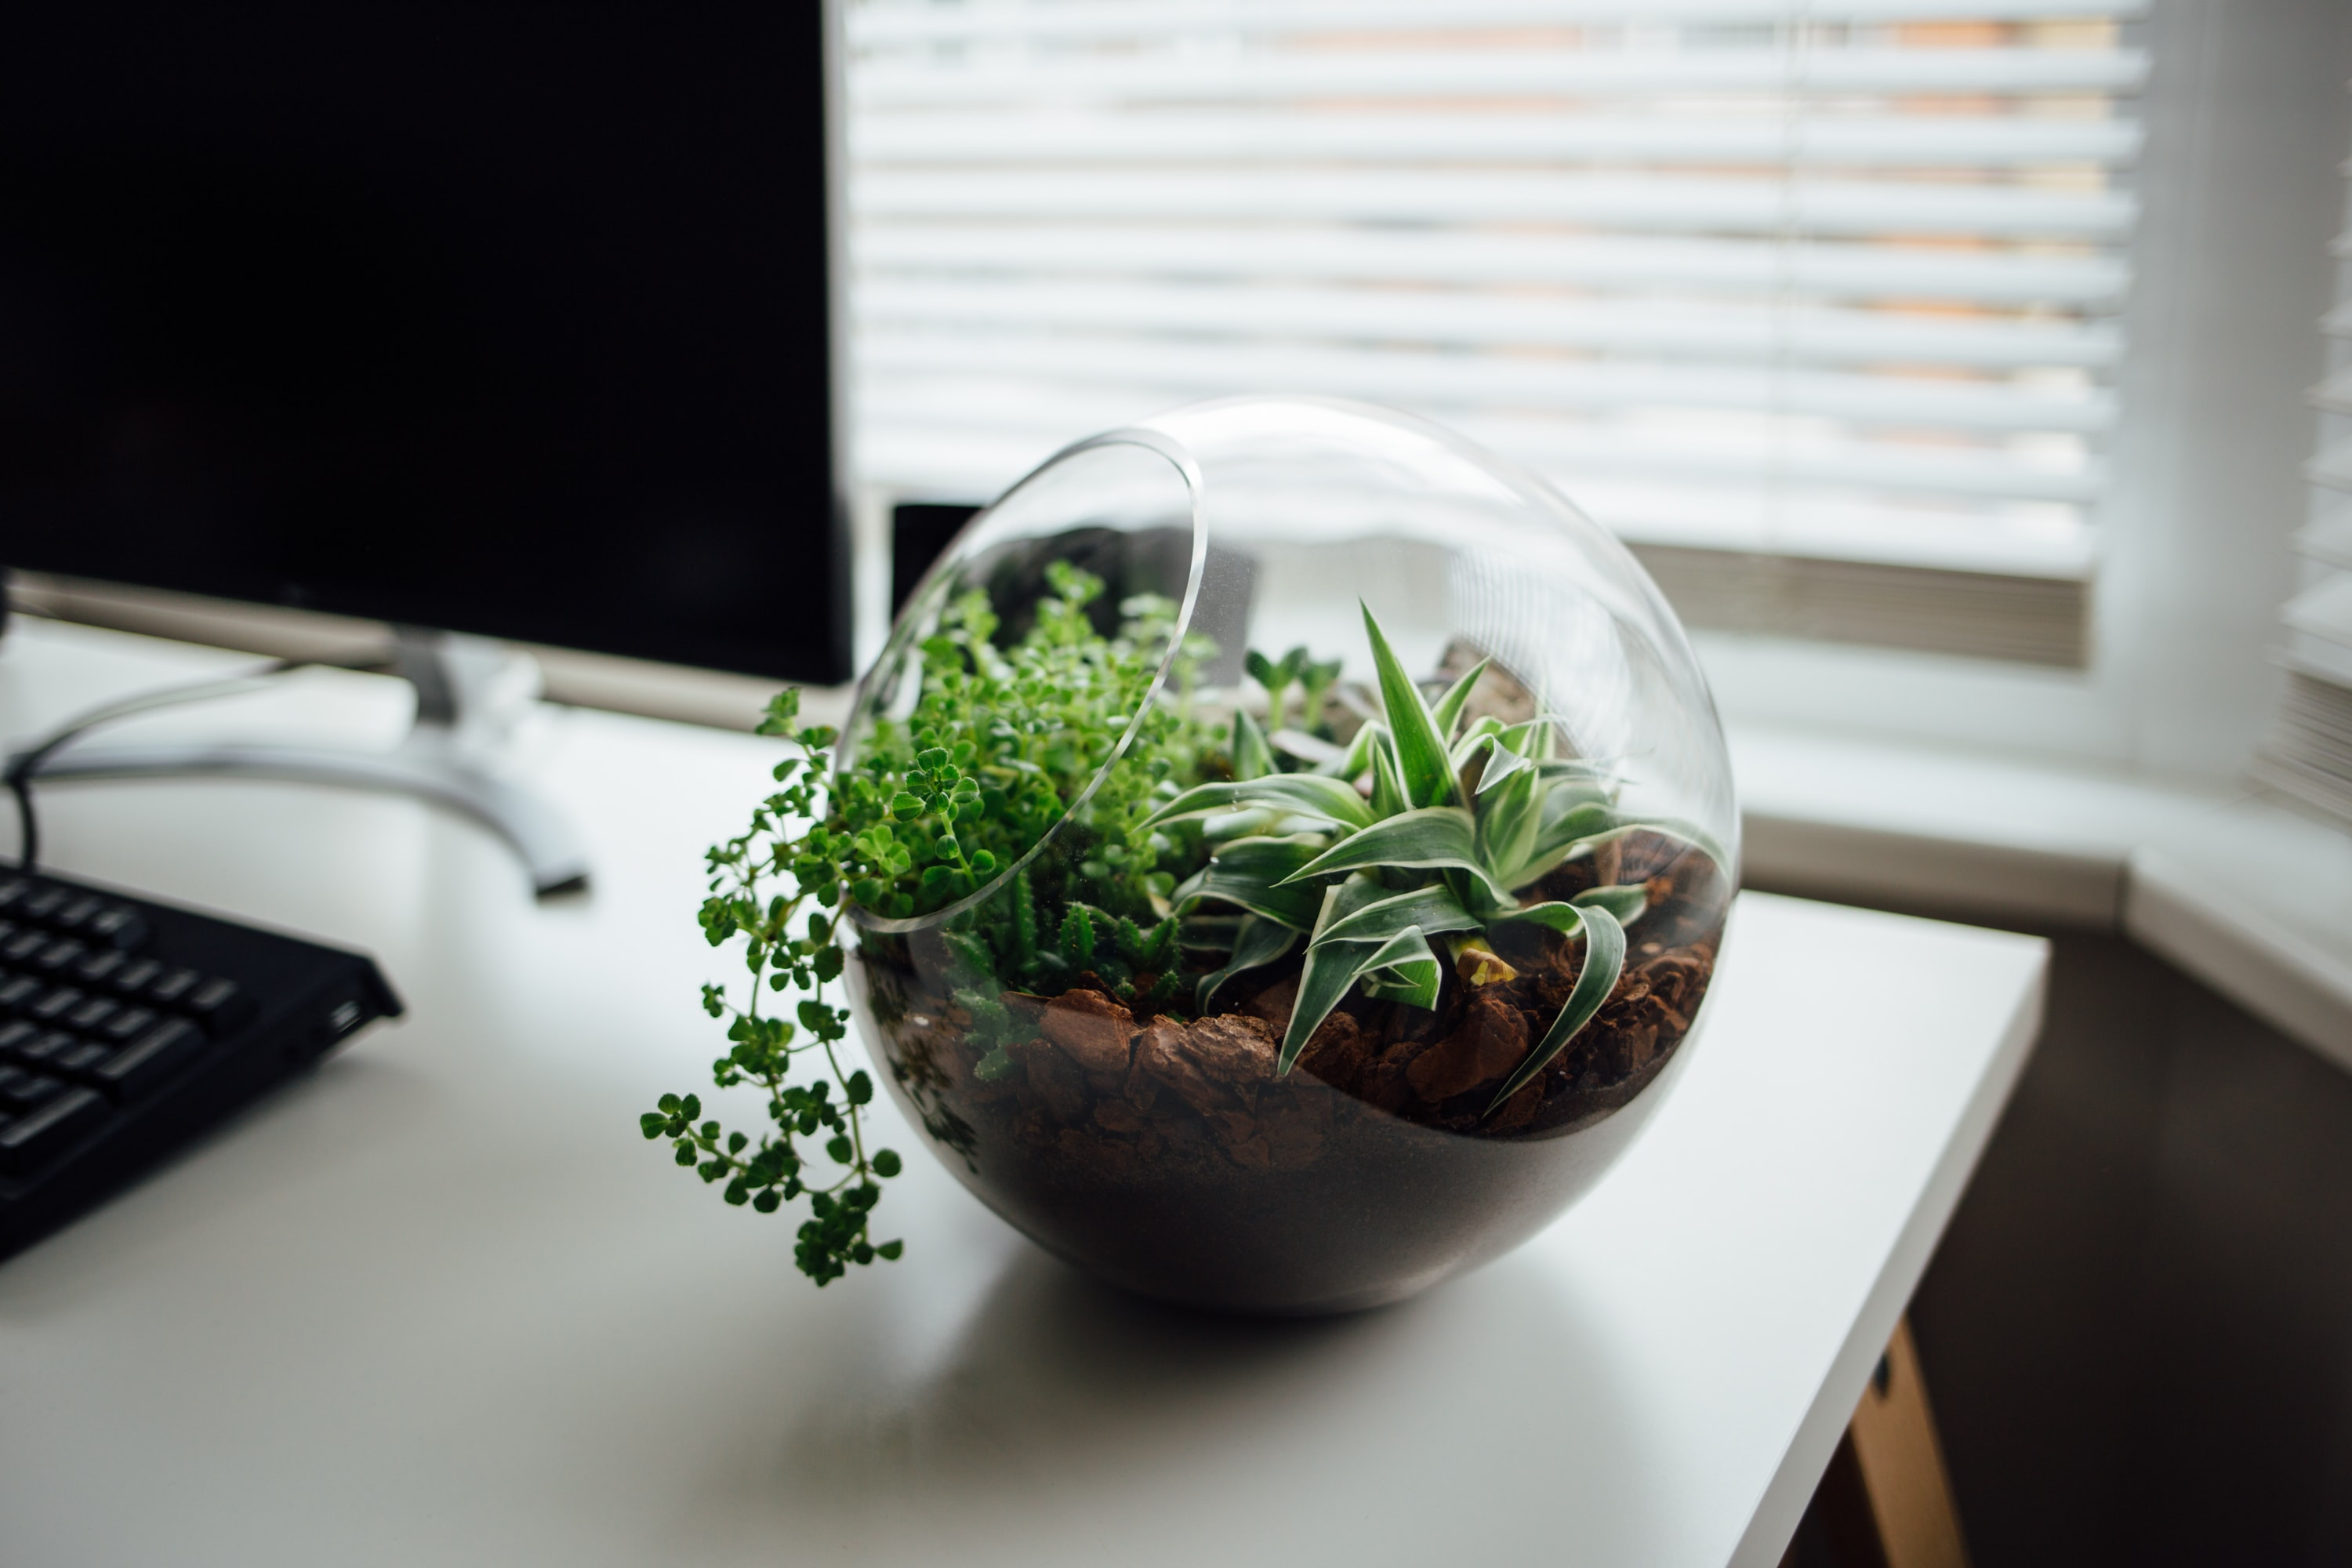 A spherical terrarium housing small succulents on a white computer desk